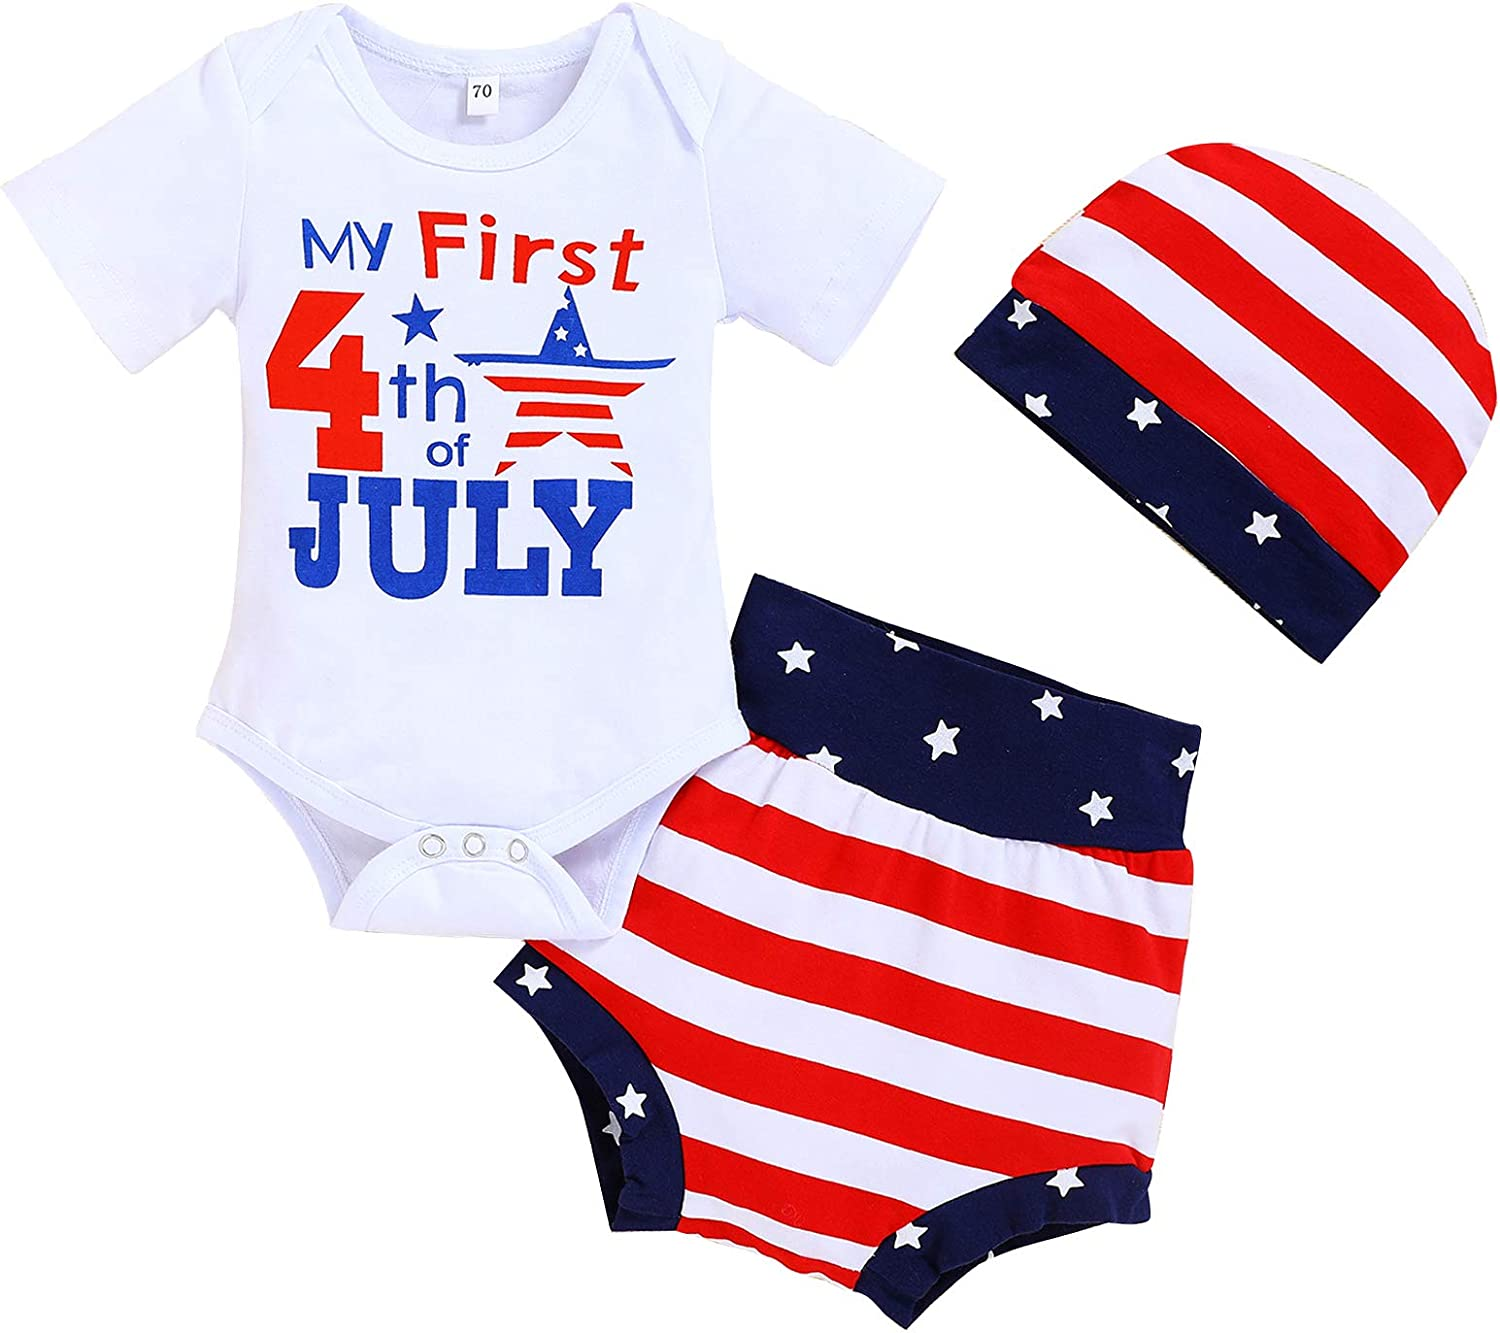 Viworld Infant Baby Girls My First 4th of July Outfit Ruffle Romper+Star Striped Shorts+Headband Independence Day Clothes